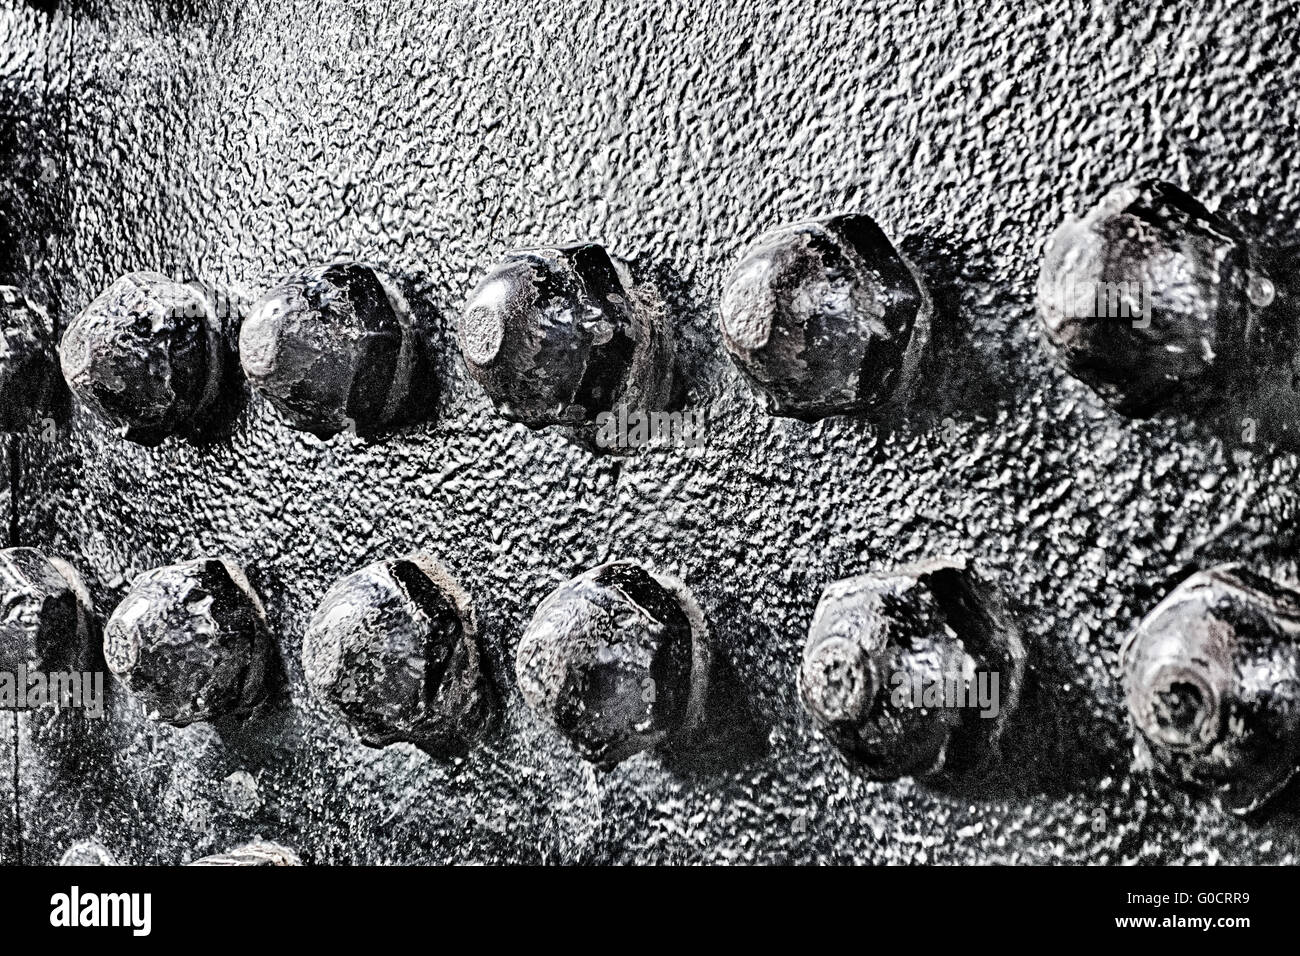 Industrial abstract background texture with black steel structure with bolts and rivets - Stock Image